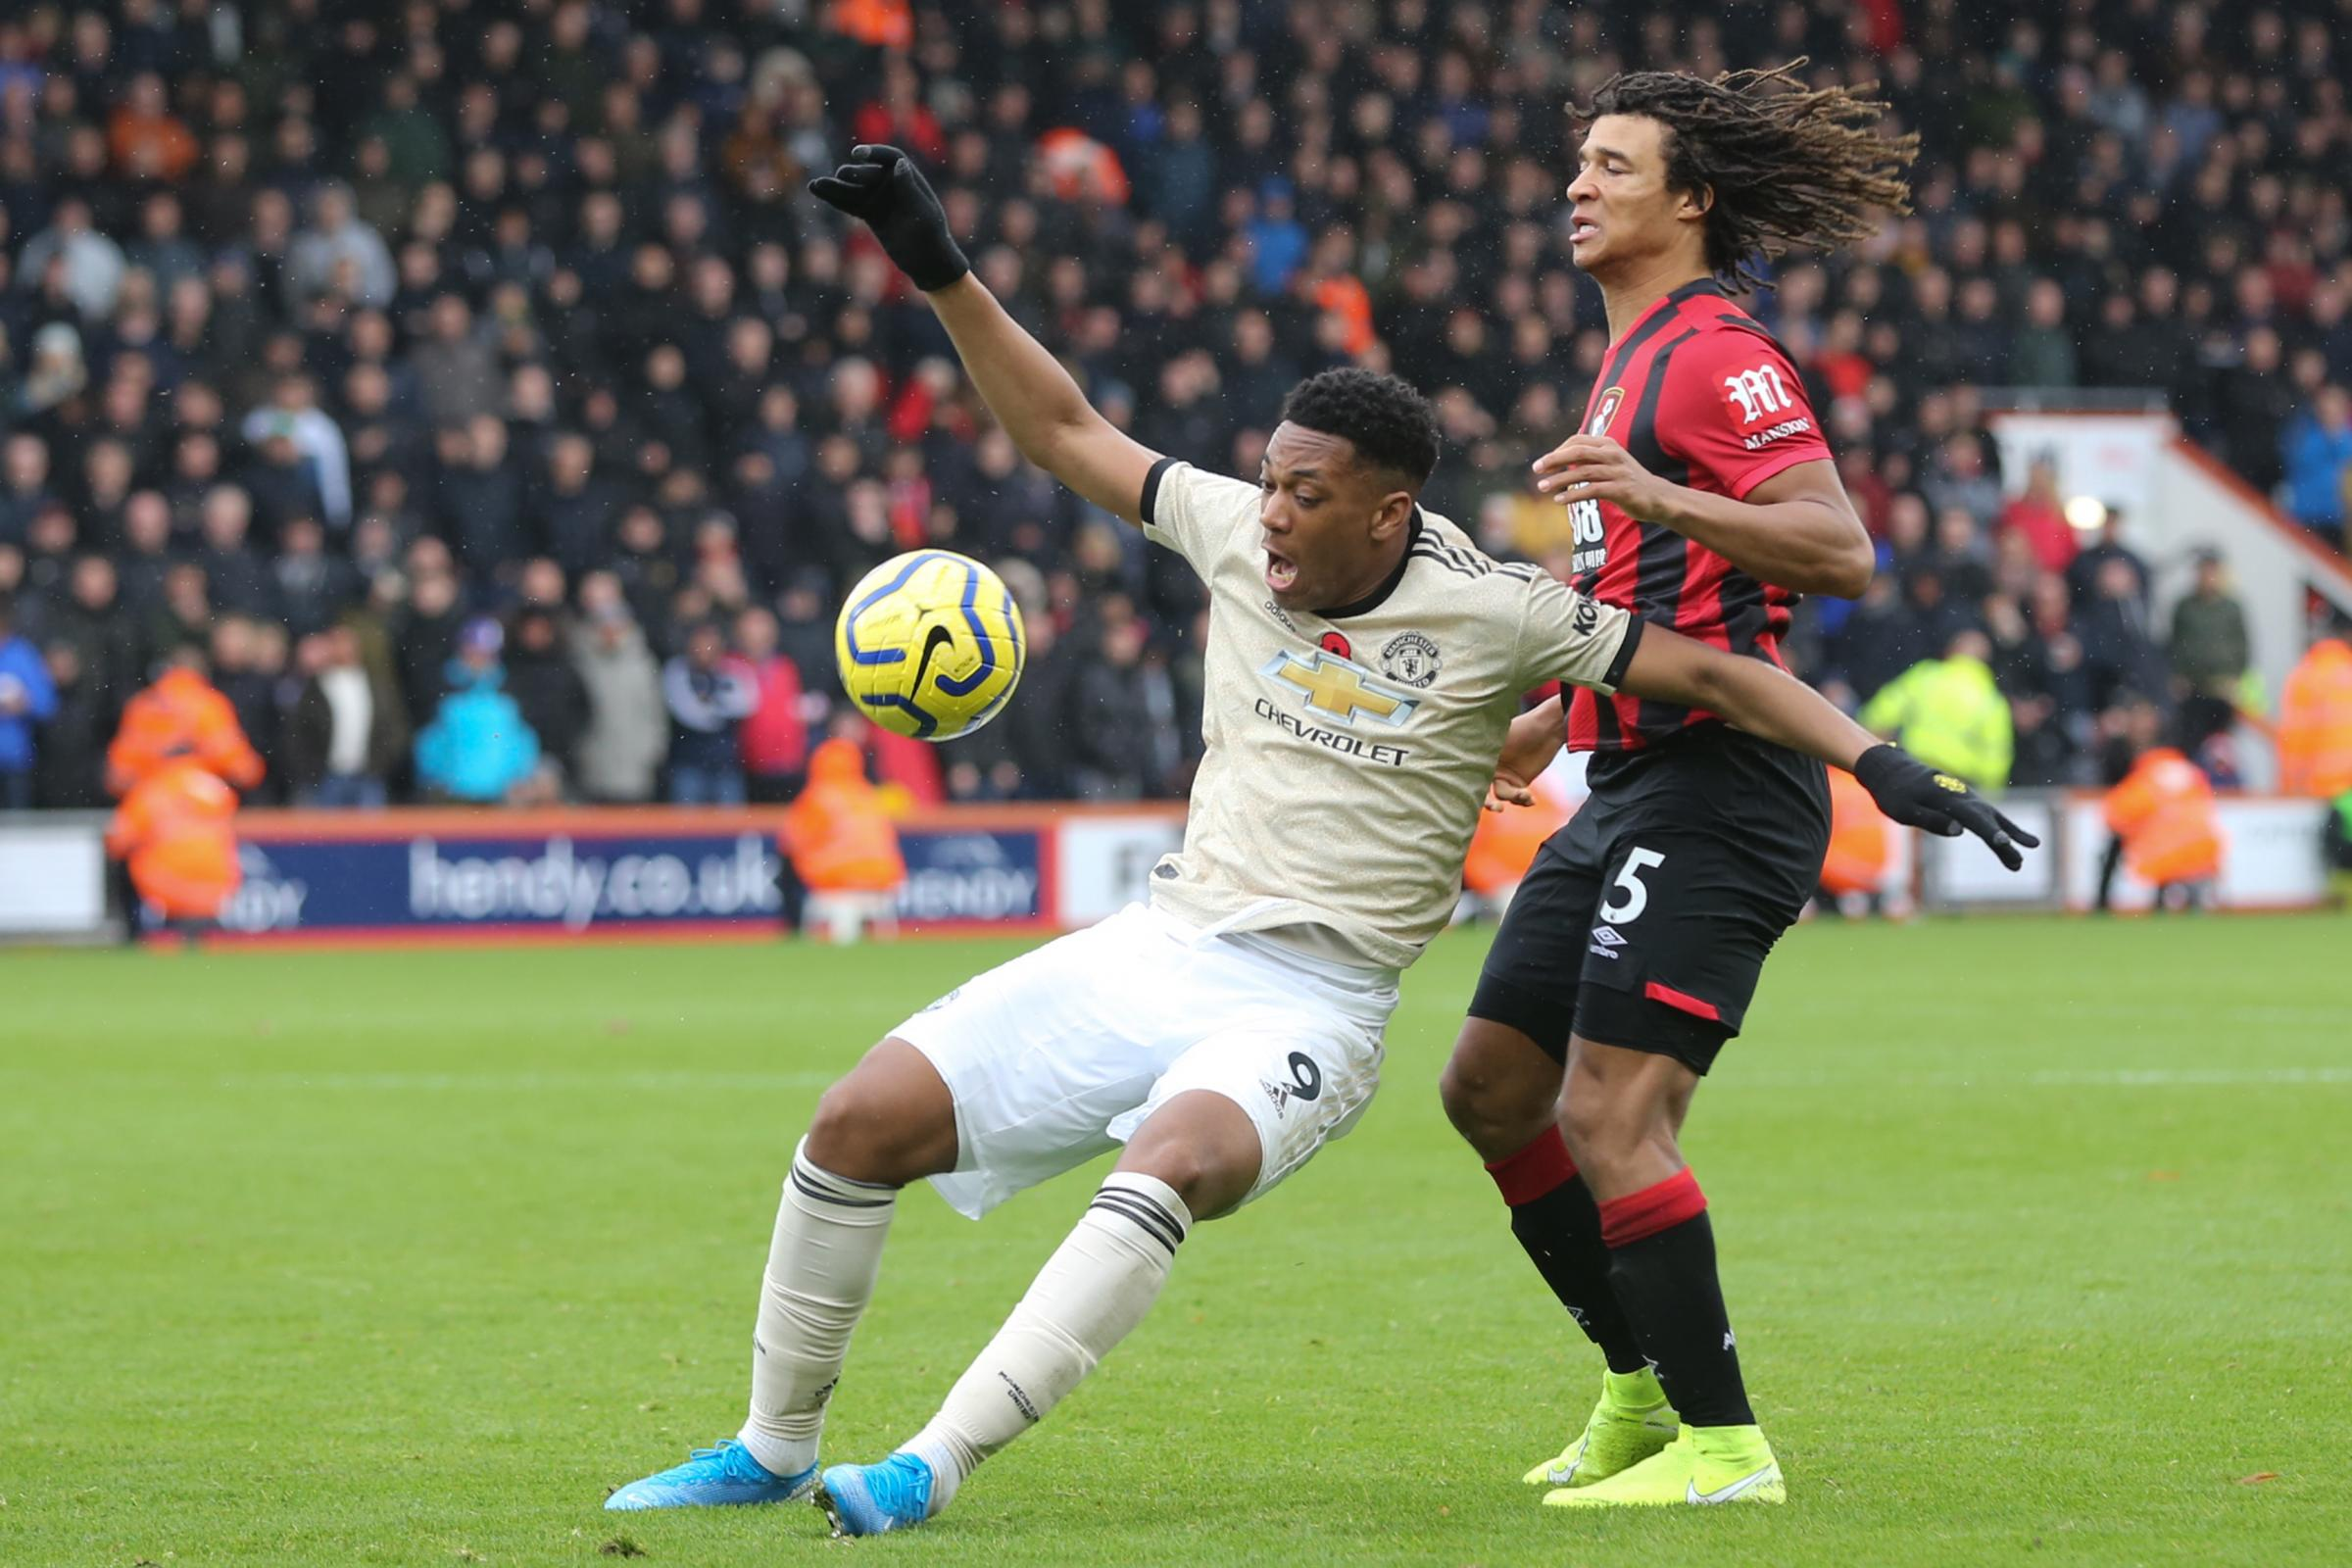 351 minutes and counting... Ake credits 'the whole team' for defensive shutout